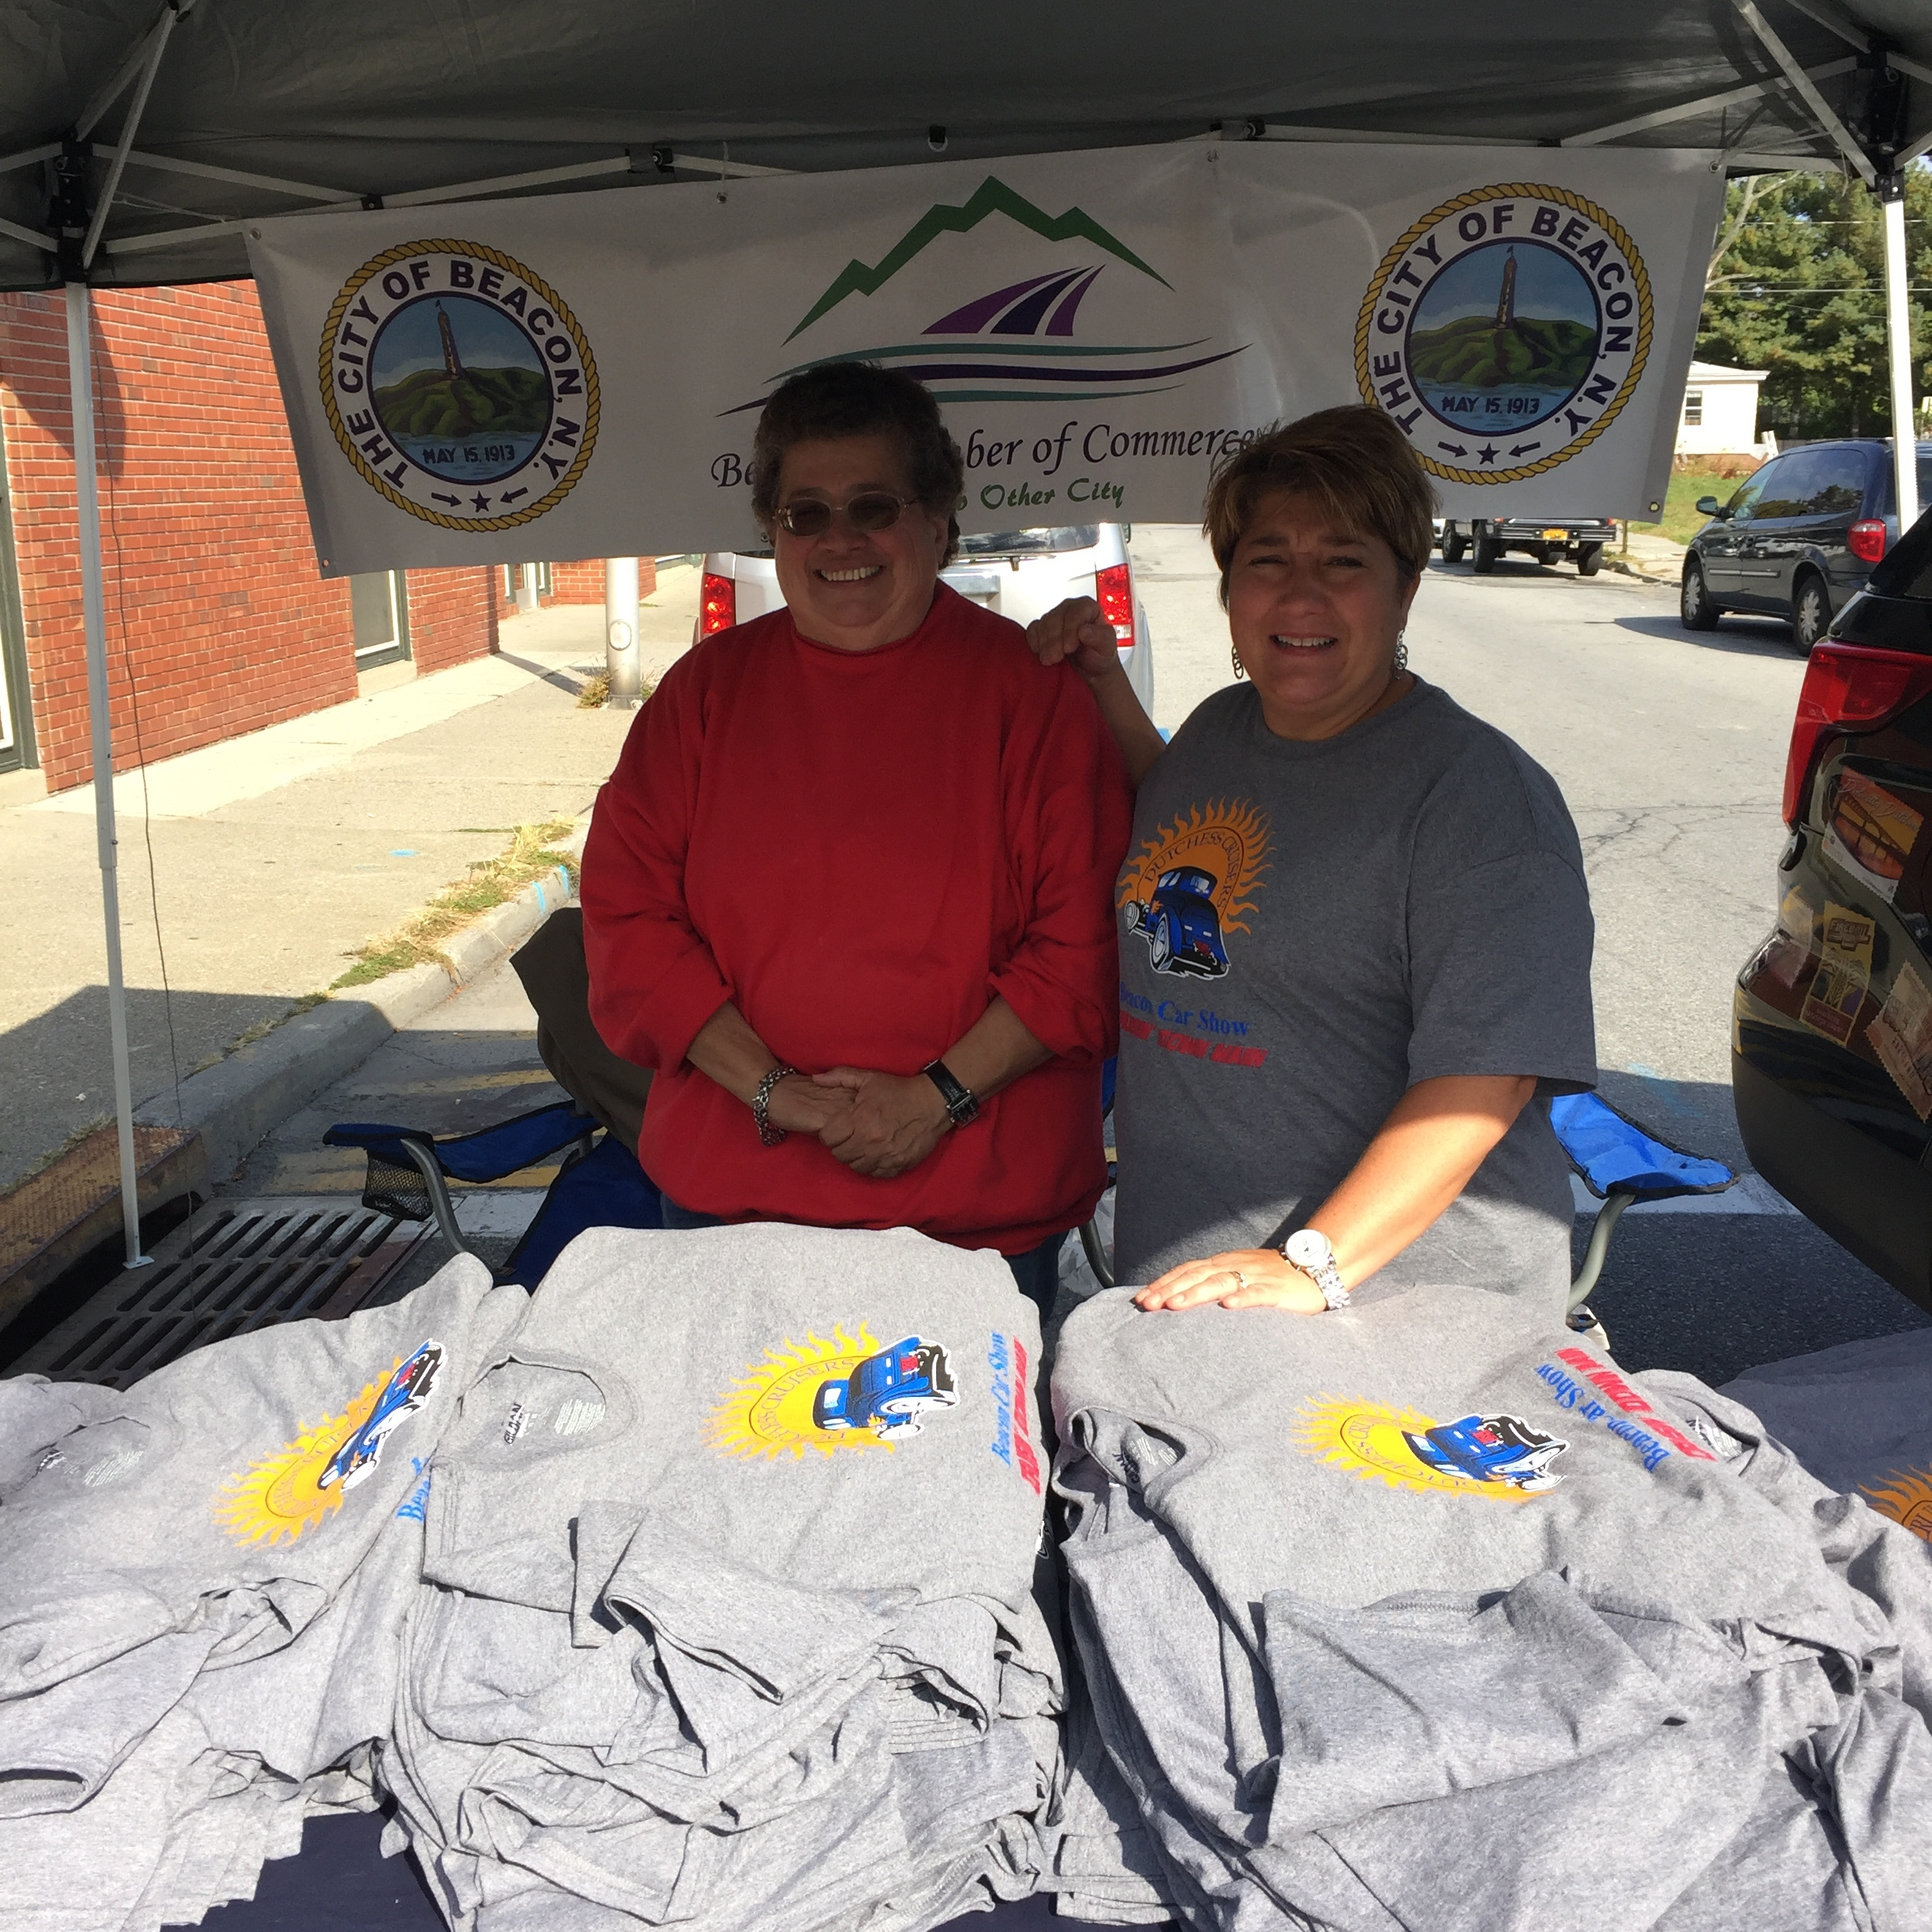 Beacon's Chamber of Commerce, selling t-shirts  UNDER THEIR TENT .